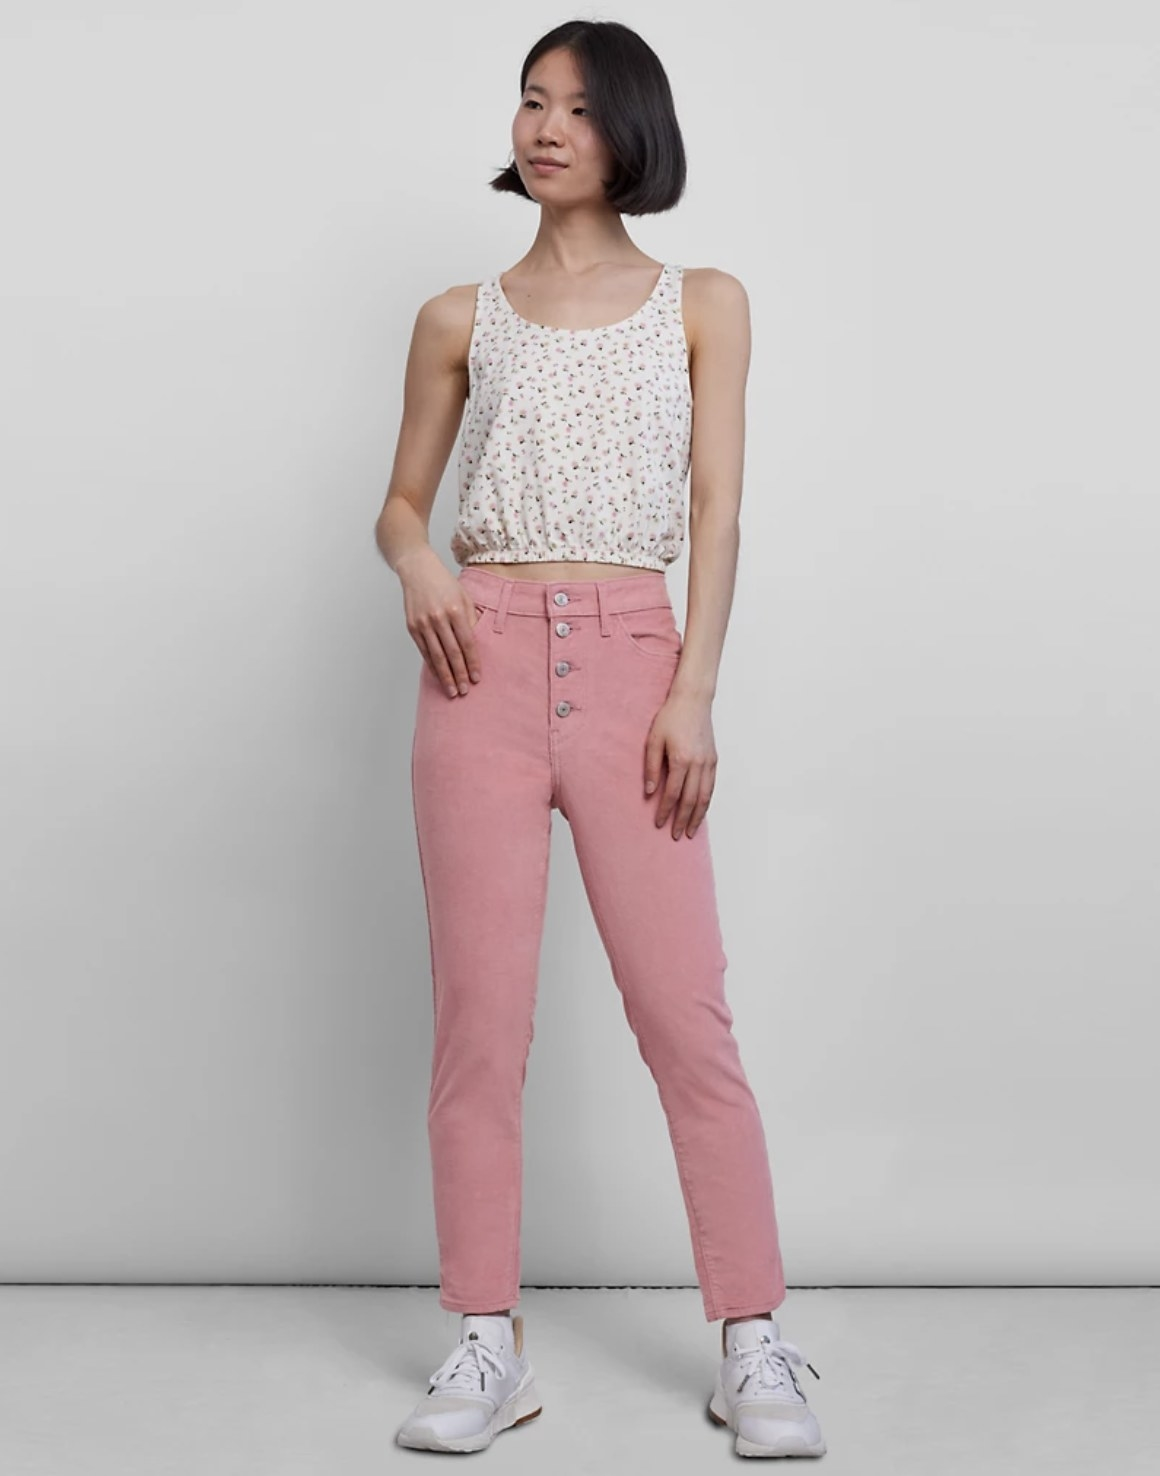 Model is wearing pink corduroy jeans and a tank top